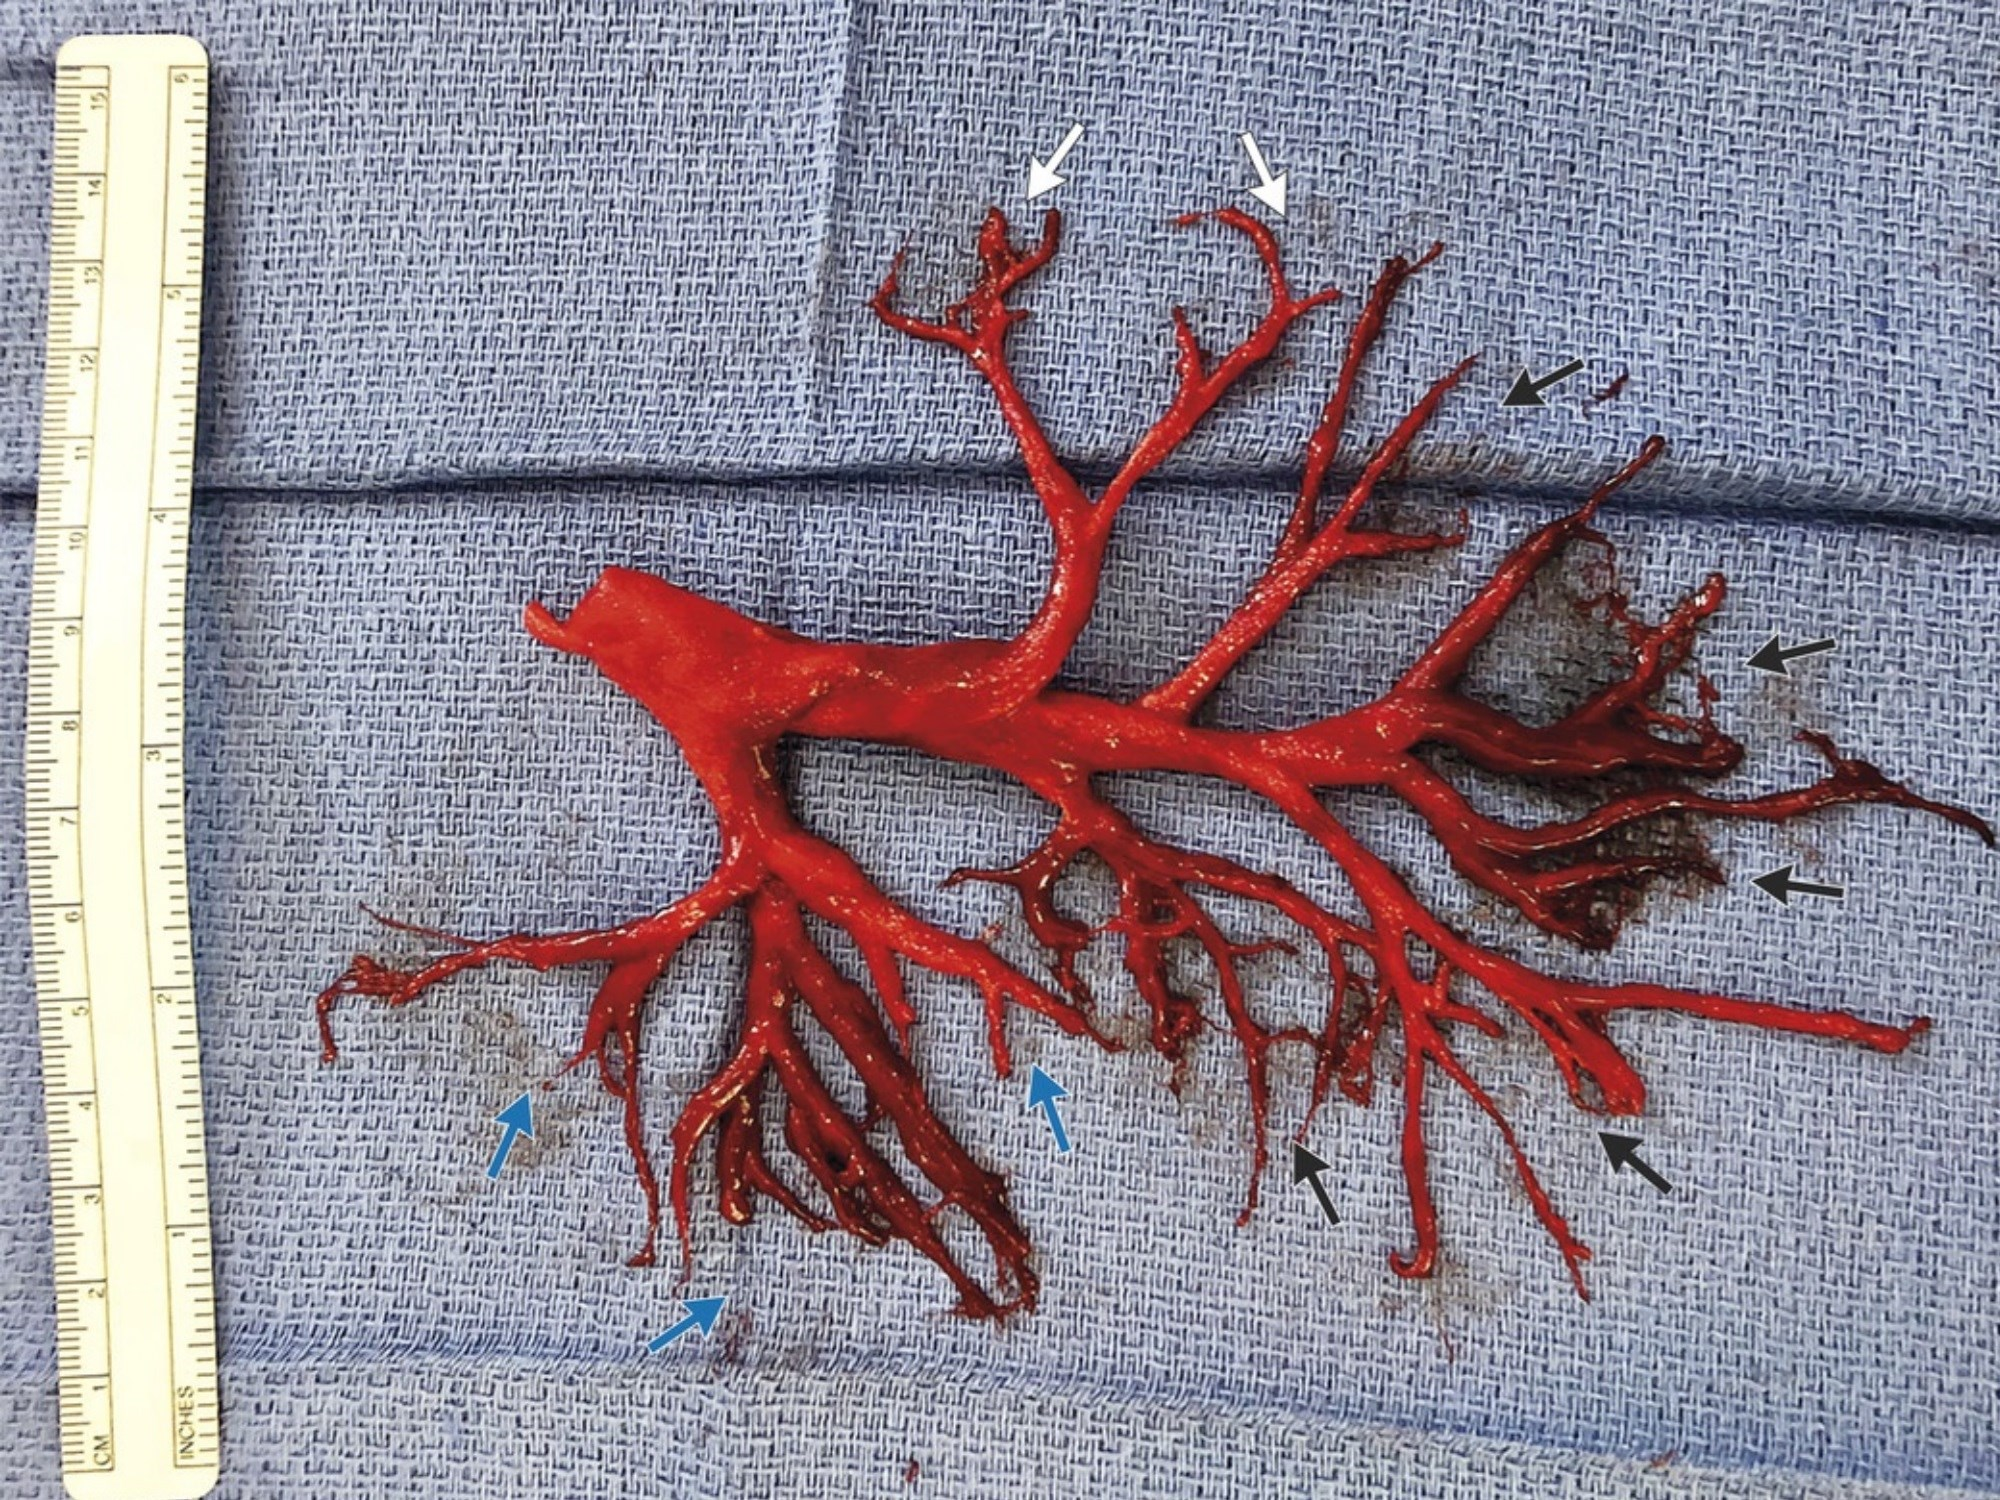 The patient experienced an extreme bout of coughing, which led to the expectoration of an intact cast of the right bronchial tree. Image credit: The New England Journal of Medicine ©2018.